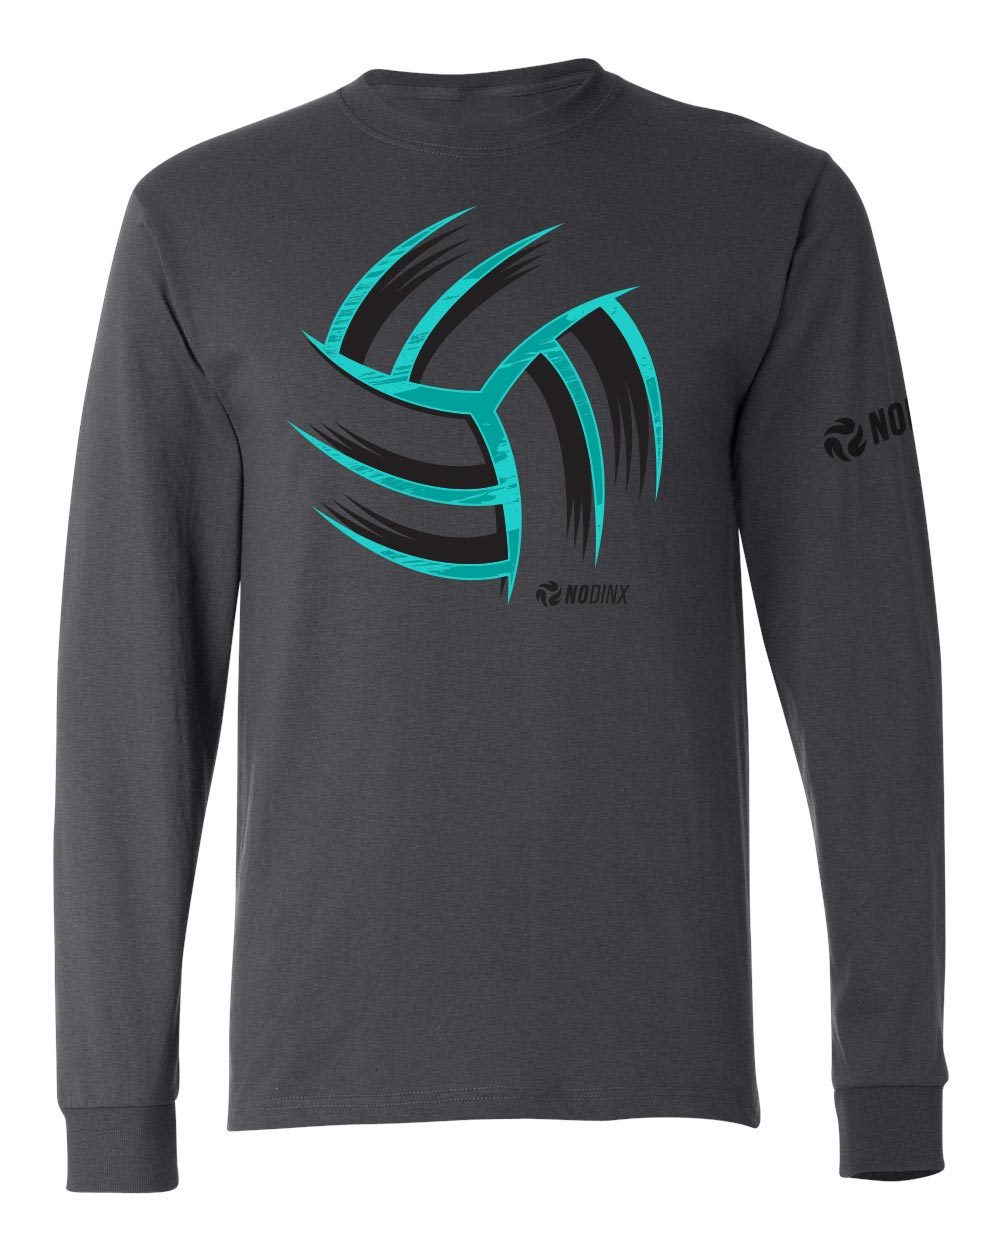 Warp Ball Long Sleeve Shirt - No Dinx Volleyball